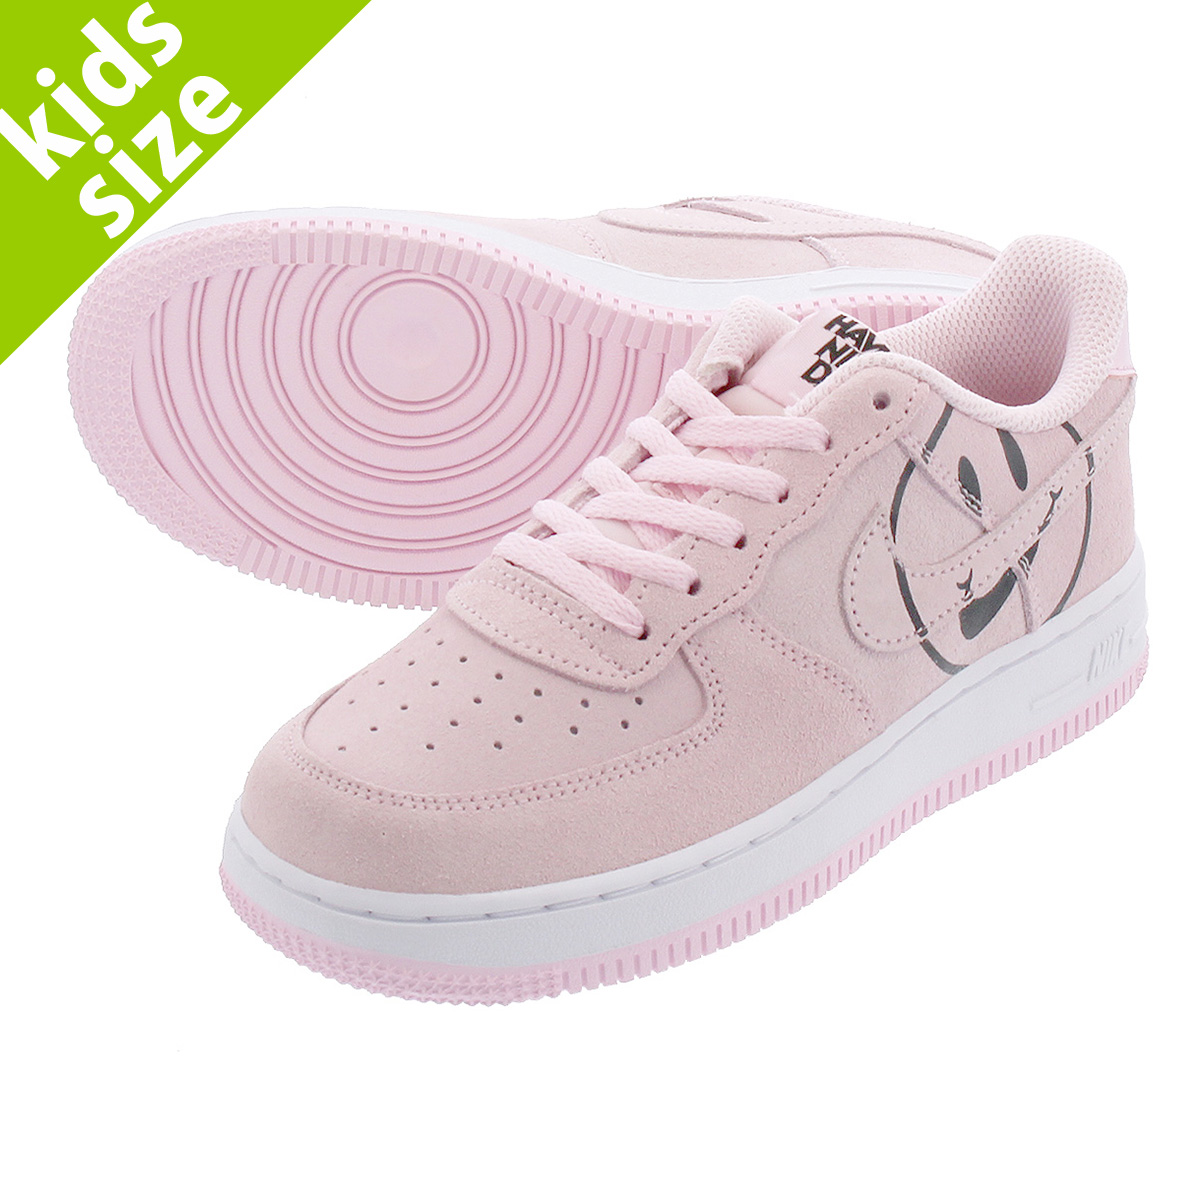 size 40 df262 2965d NIKE AIR FORCE 1 LV8 2 PS Nike air force 1 LV8 2 PS PINK FOAM ...